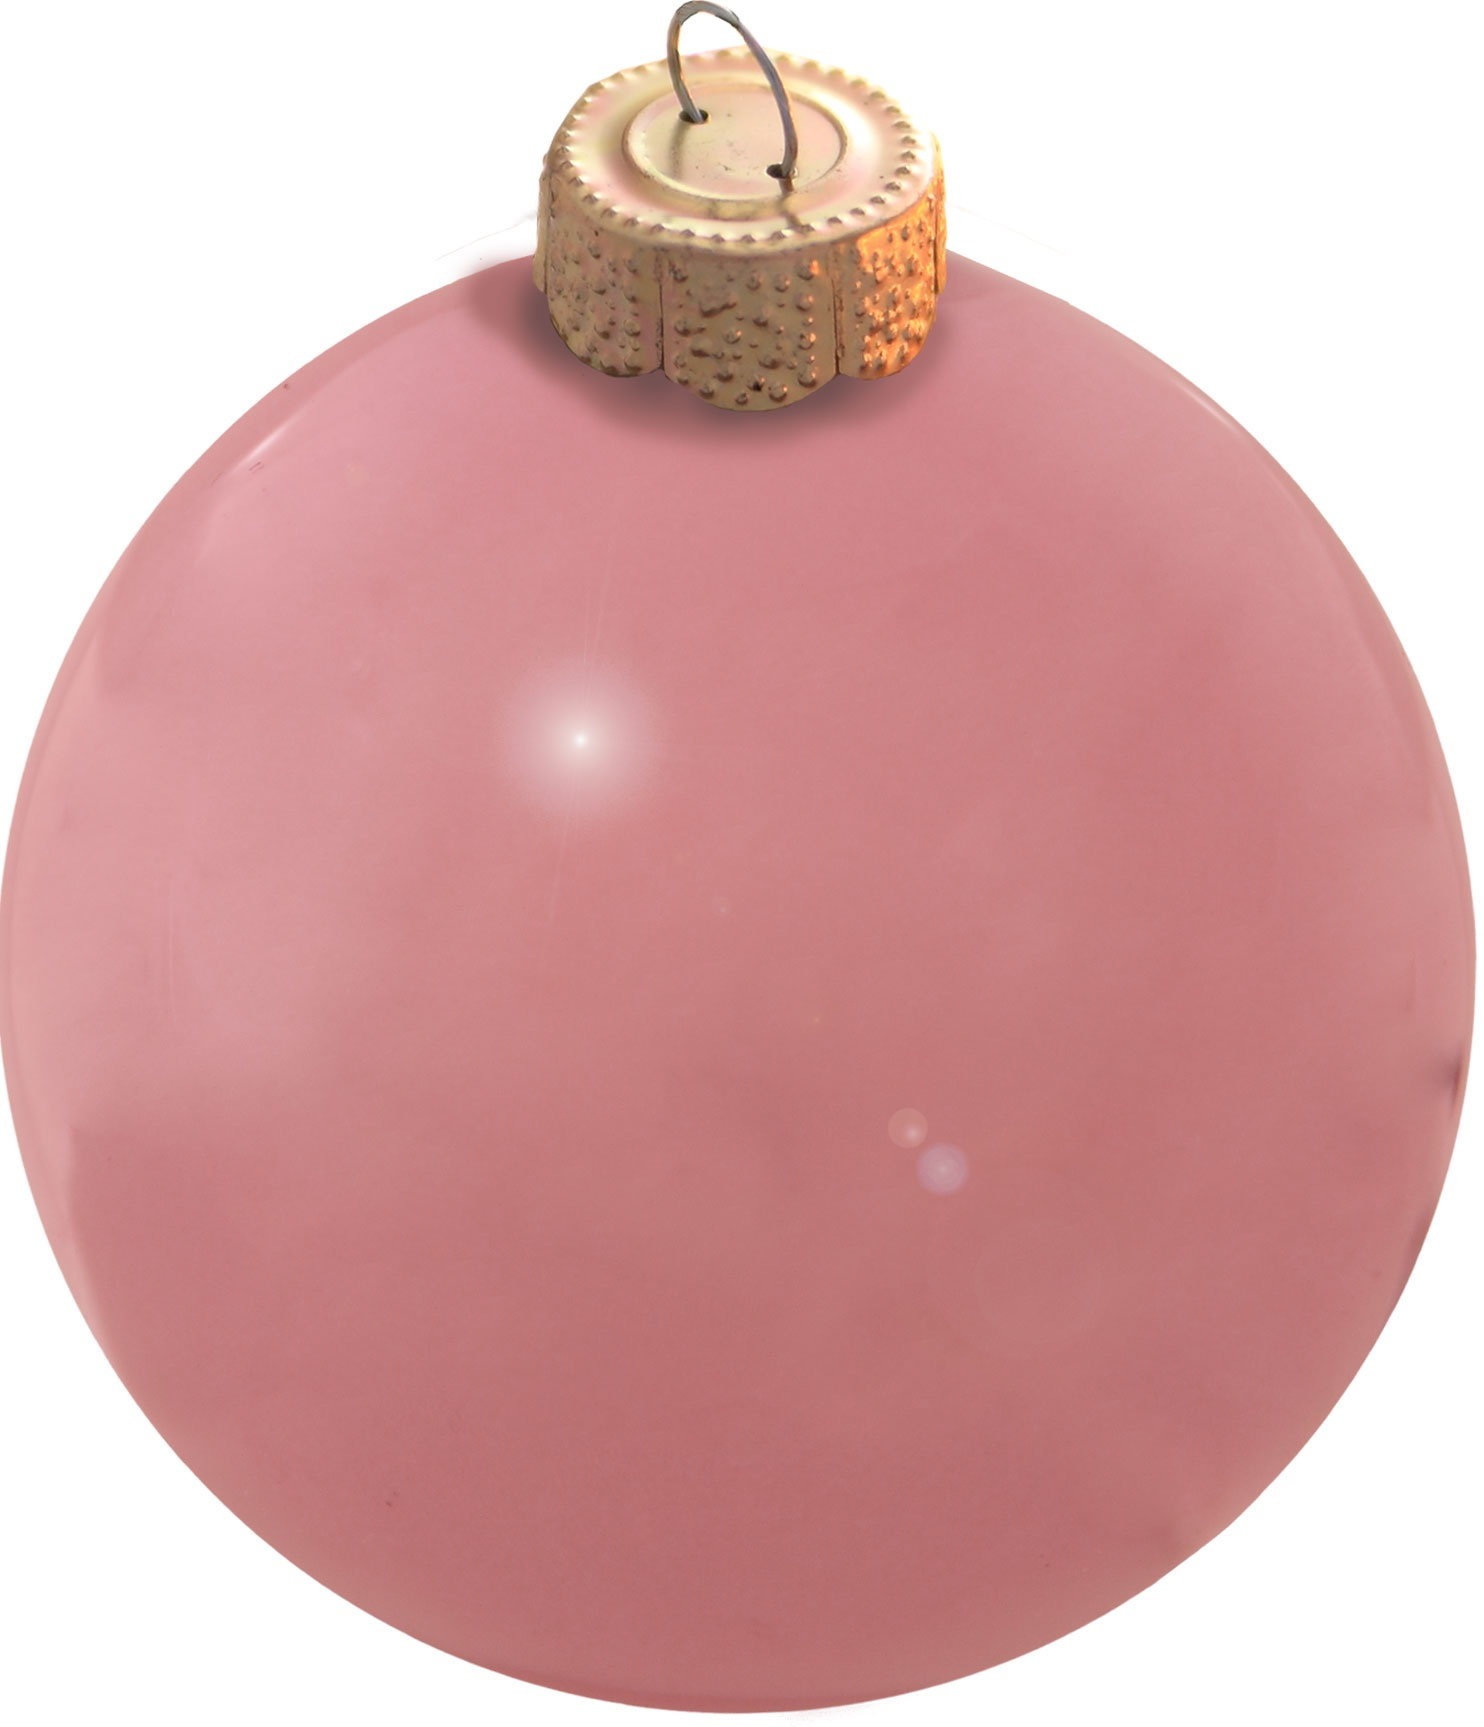 25cm Large Outdoor Commercial Christmas Tree Bauble: Pale Pink Glass Ball Christmas Ornament